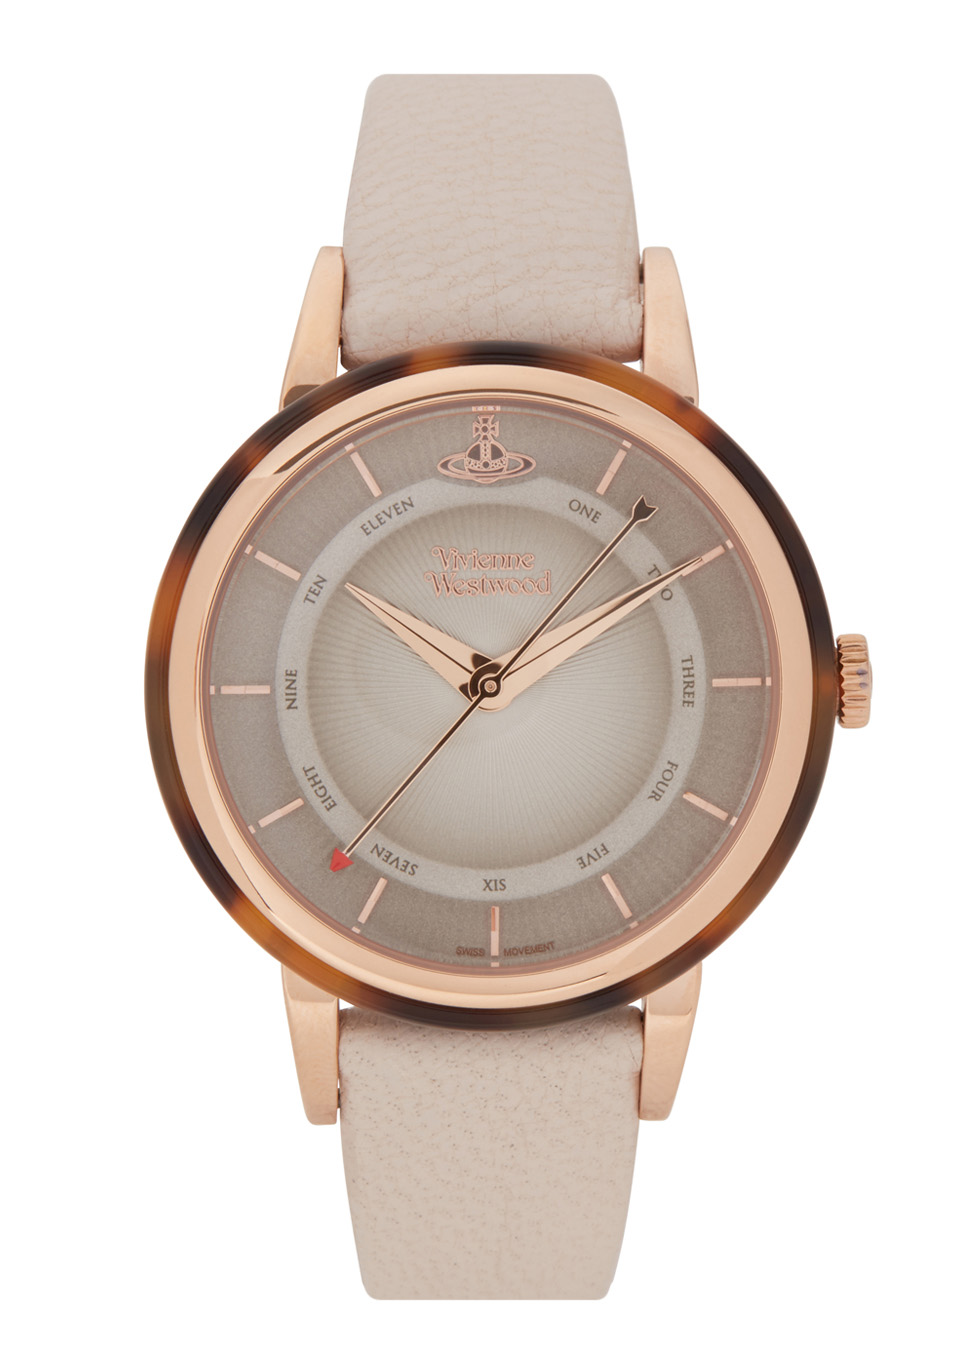 Portobello rose gold tone watch - Vivienne Westwood